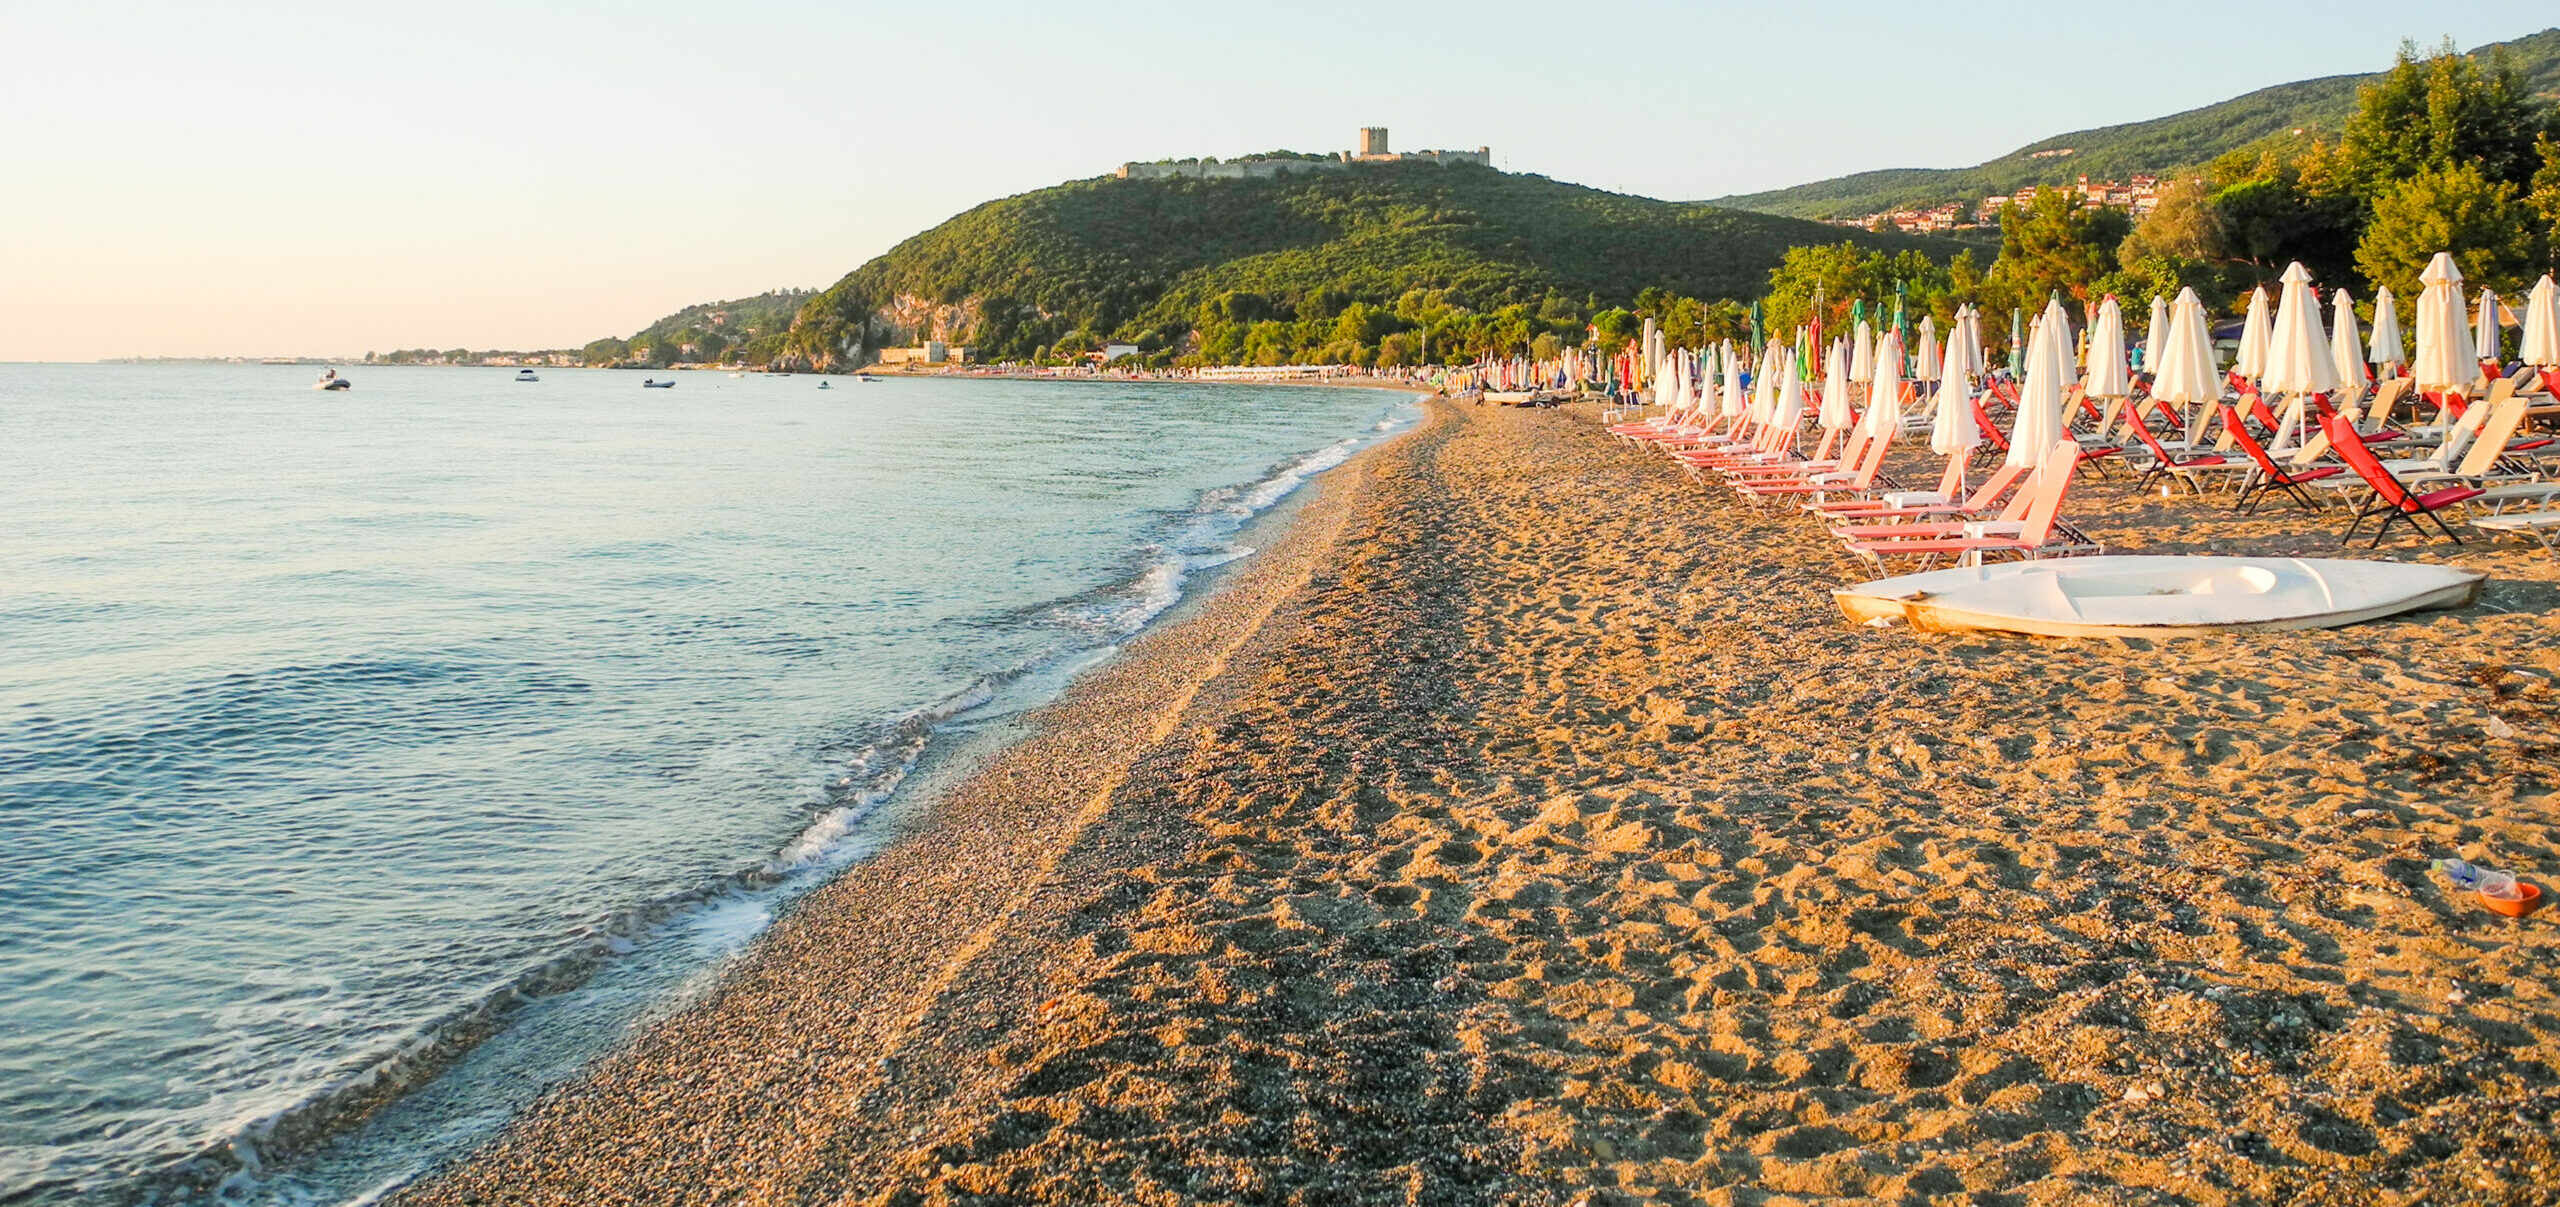 Skotina: The Greek village that has moved three times